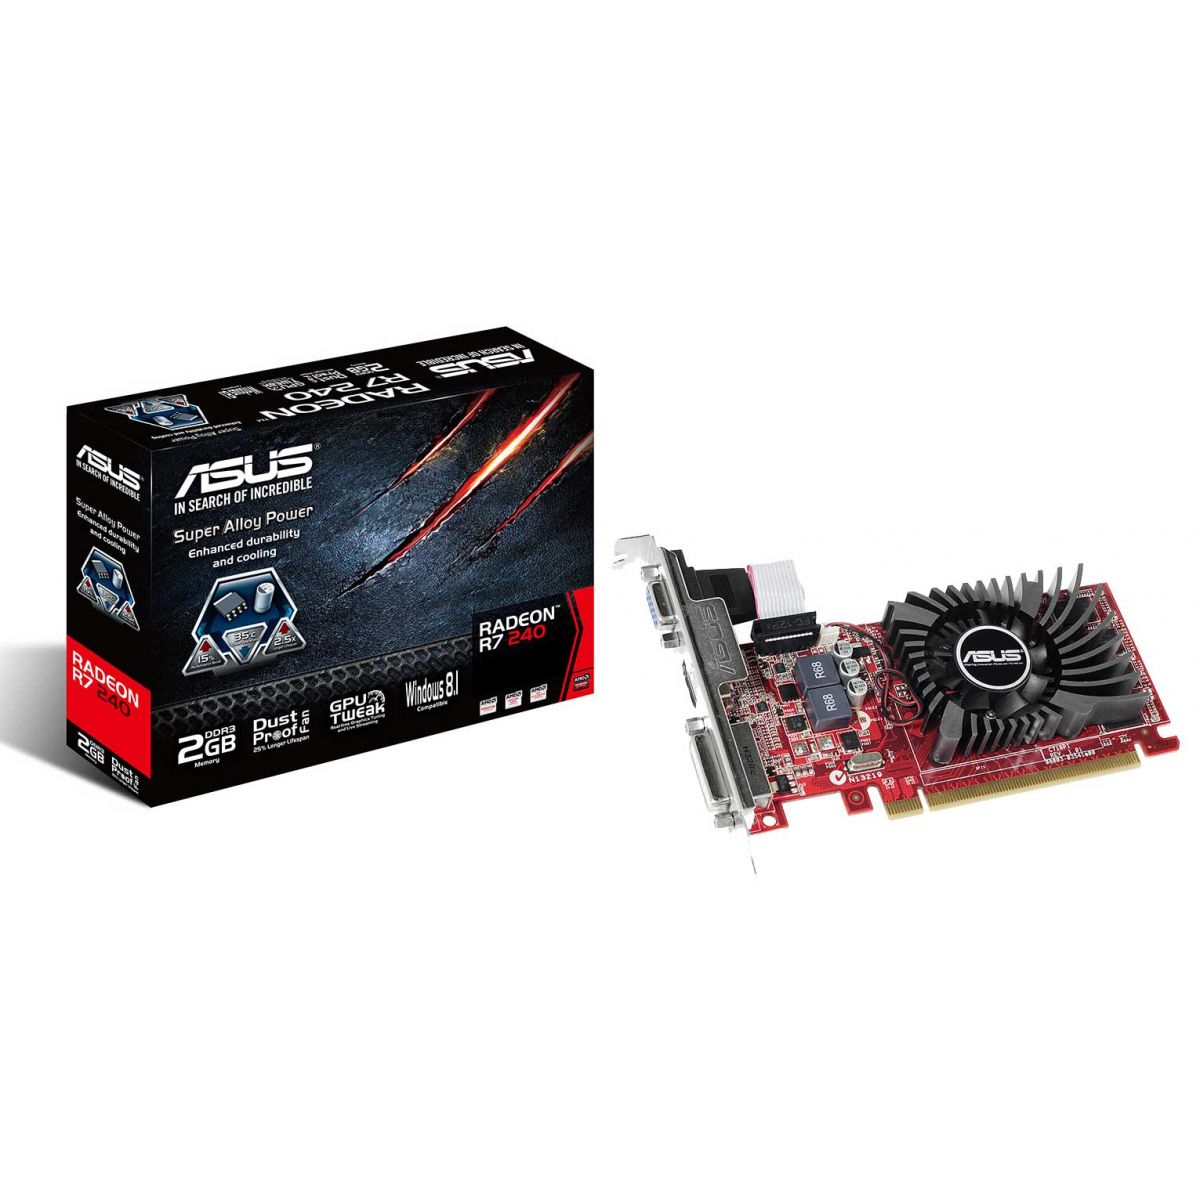 Placa de Vídeo Radeon R7 240 2GB DDR3 128Bit R7240-2GD3-L - Asus